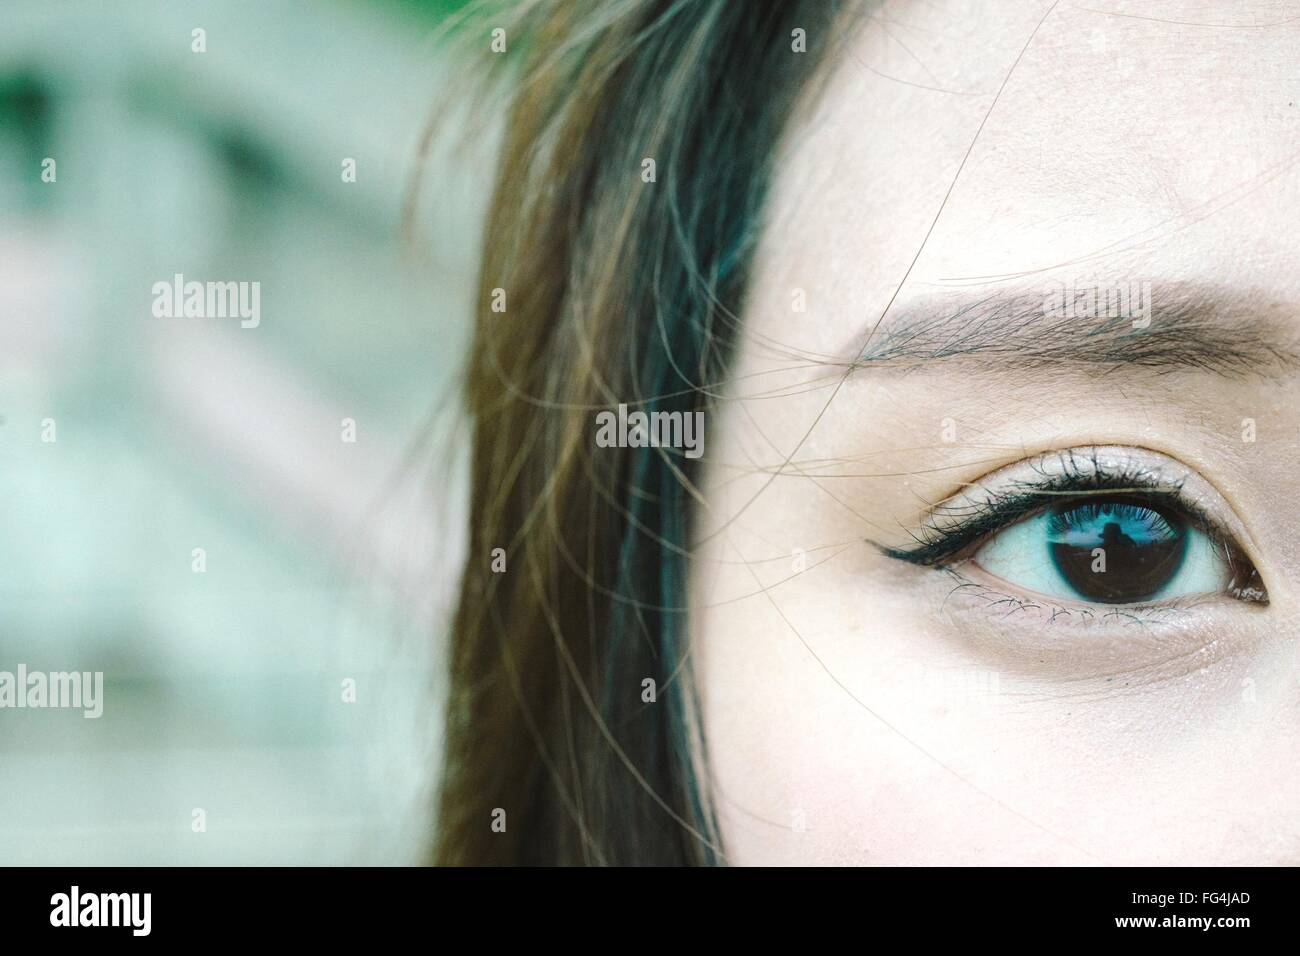 Close-Up Of Young Woman Eye - Stock Image